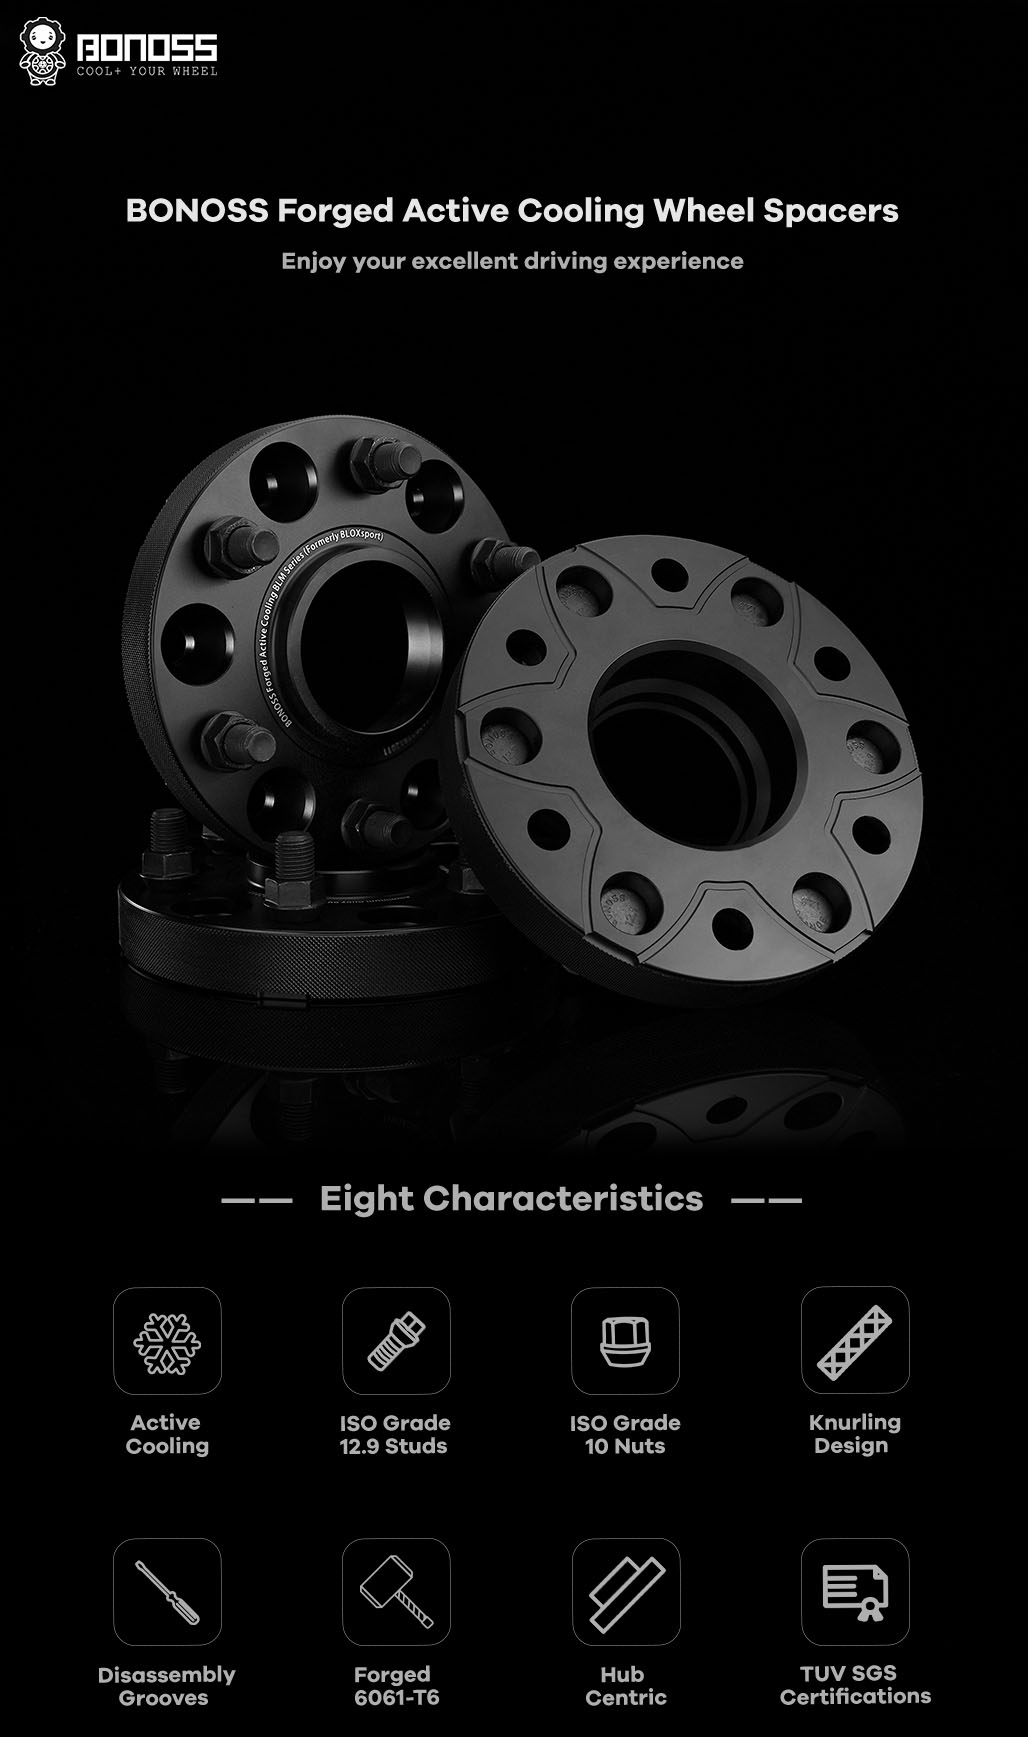 AL6061-T6 BONOSS-forged-active-cooling-wheel-spacer-6X127-78.1-M12X1.5-by-lulu-1